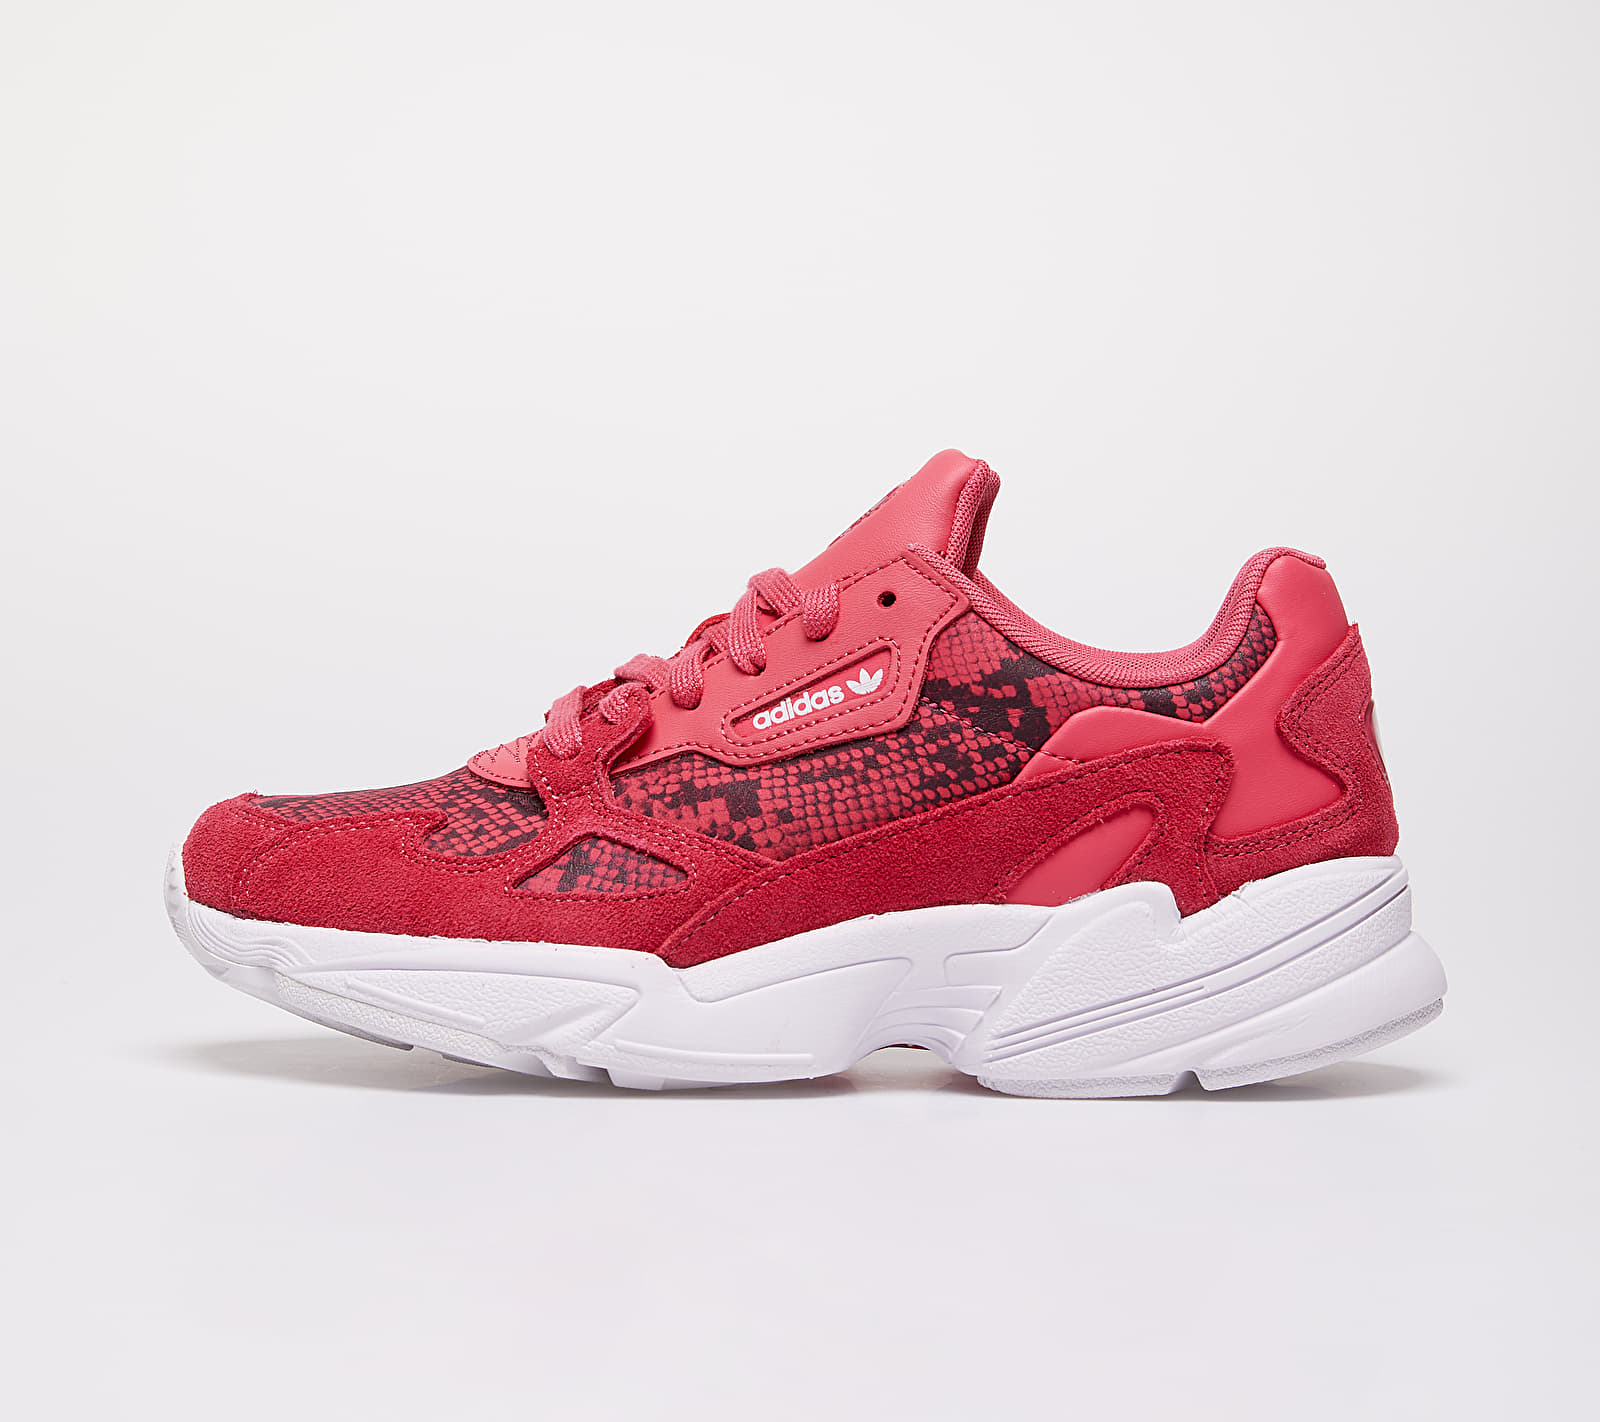 adidas Falcon W Craft Pink/ Craft Pink/ Ftw White EUR 38